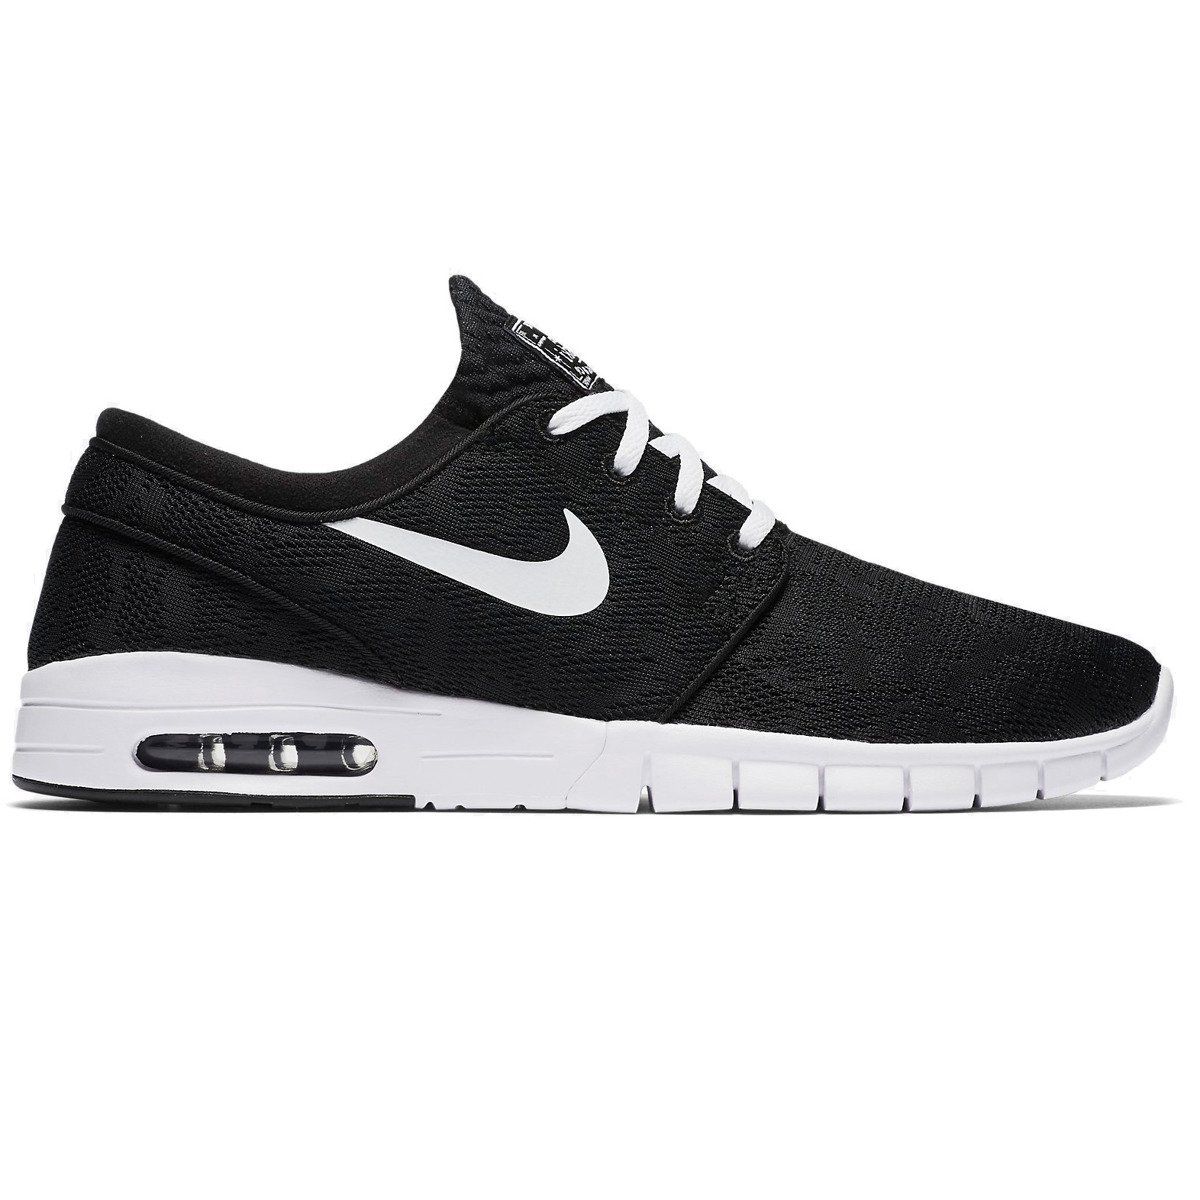 wholesale dealer 467bc f2f5f shoes nike sb stefan janoski max 631303-010 black white black   Shoes   Nike  SB Shoes   nike janoski SALE   Sale 50% -70%   Shoes Brands   Nike SB Buty  ...